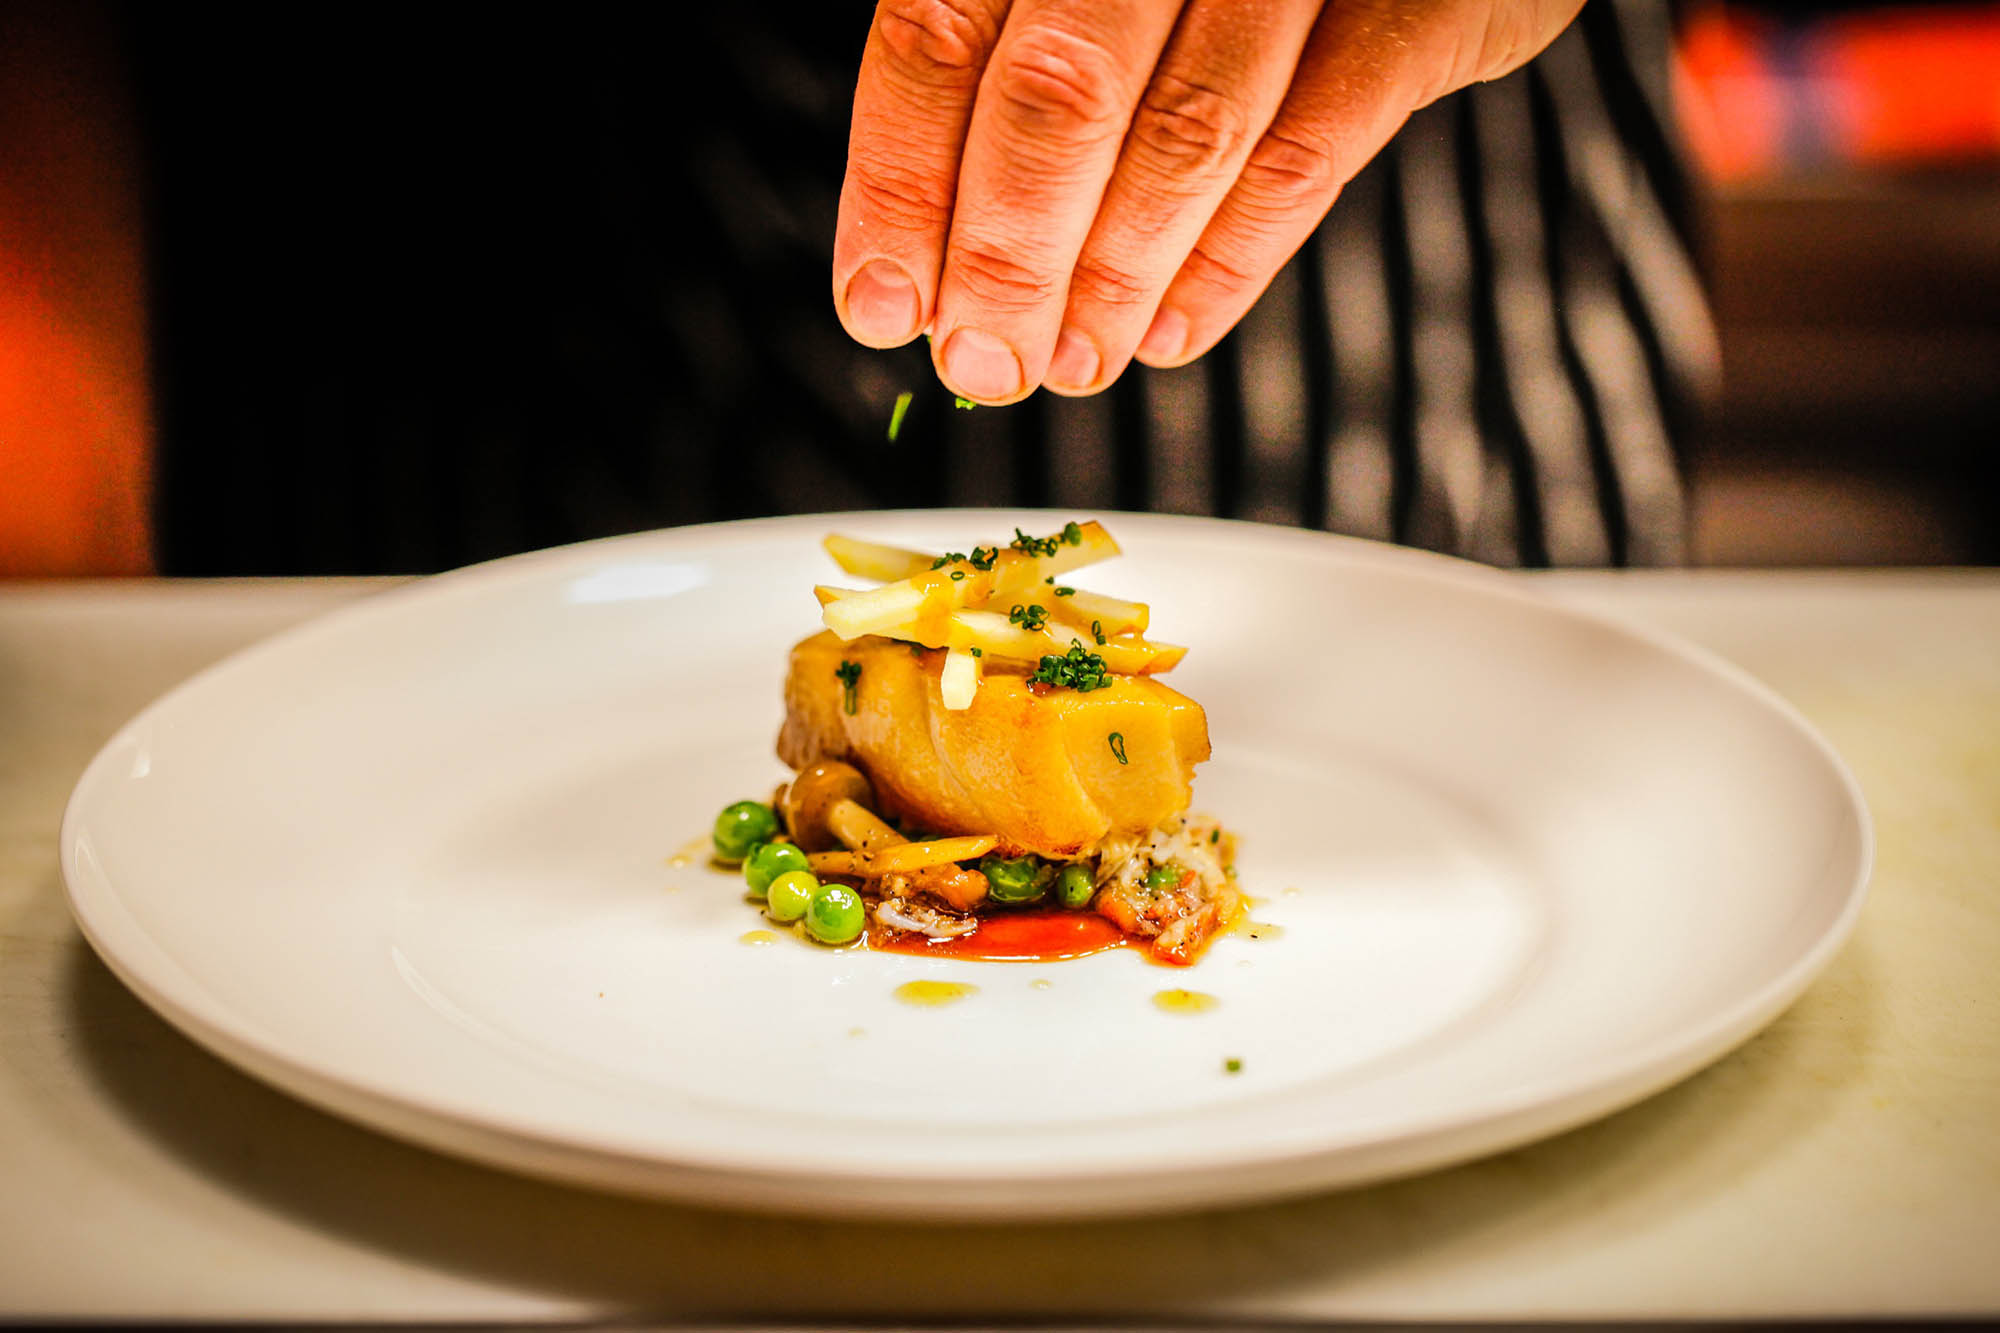 ' ' from the web at 'http://tag-restaurant.com/wp-content/uploads/2014/12/tag-social-food-and-environment-1.jpg'